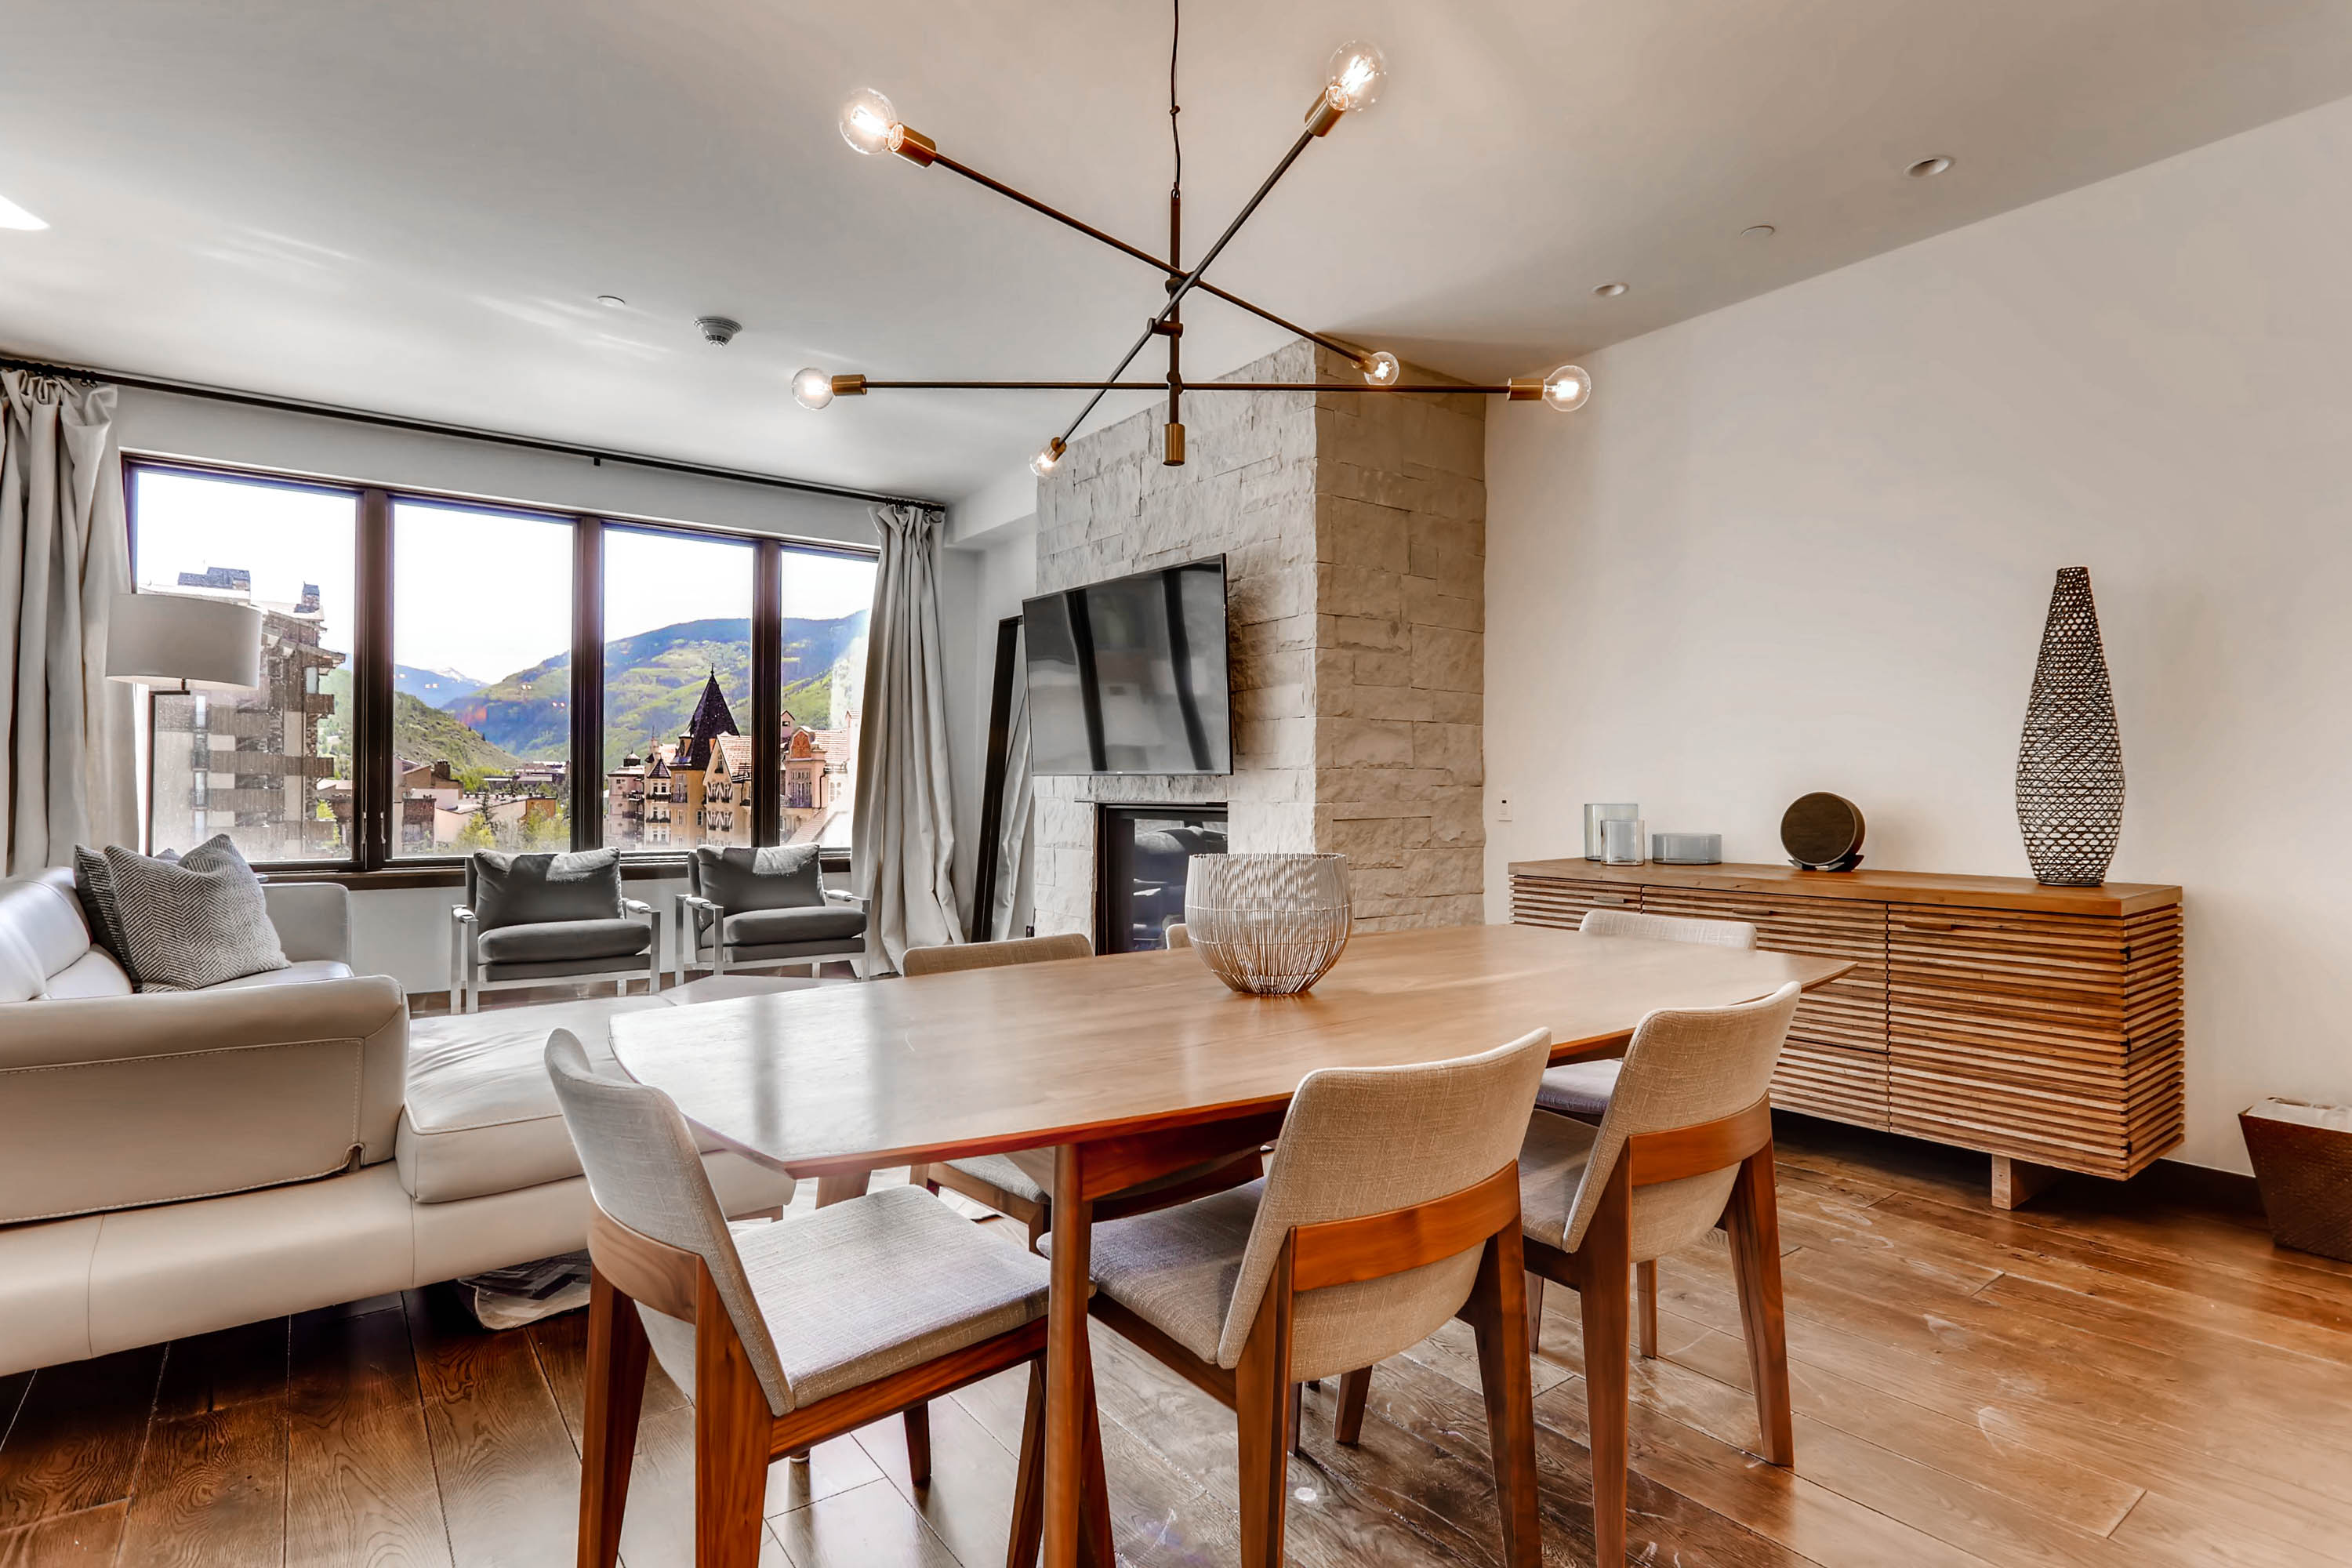 Property Image 1 - Stylish Modernized Residence with the Vail Mountain Views You Crave